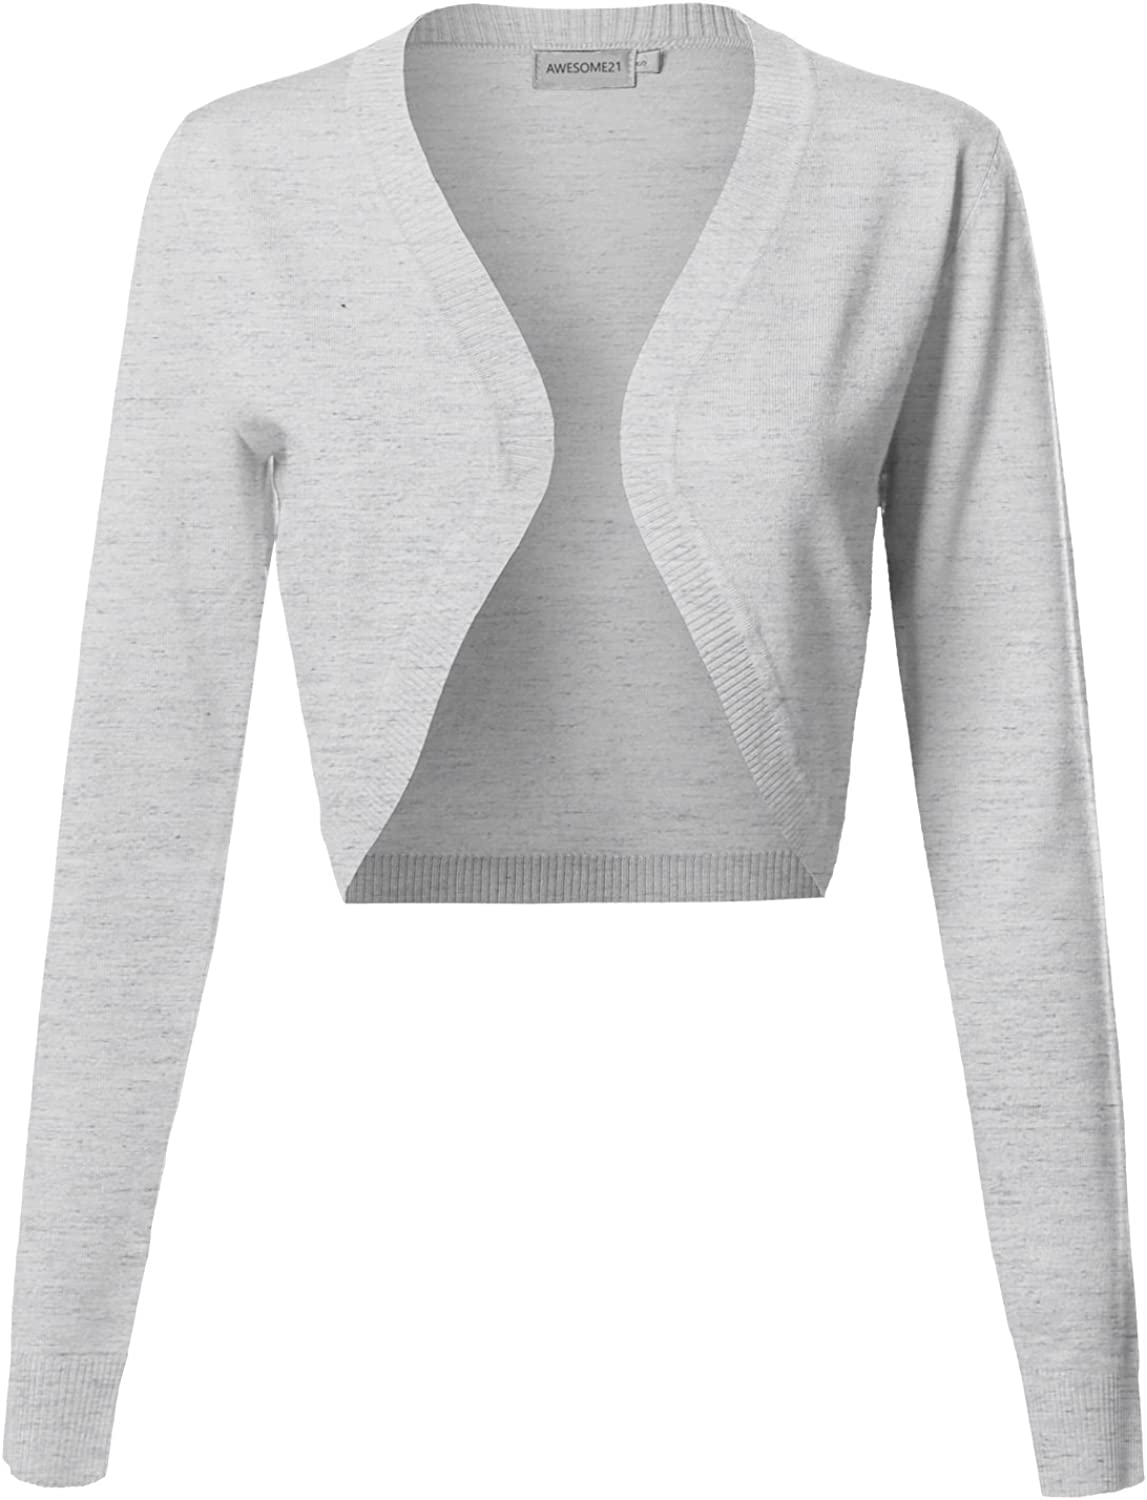 Awesome21 Women's Viscose Solid Office Soft Stretch Long Sleeve Bolero Cardigan